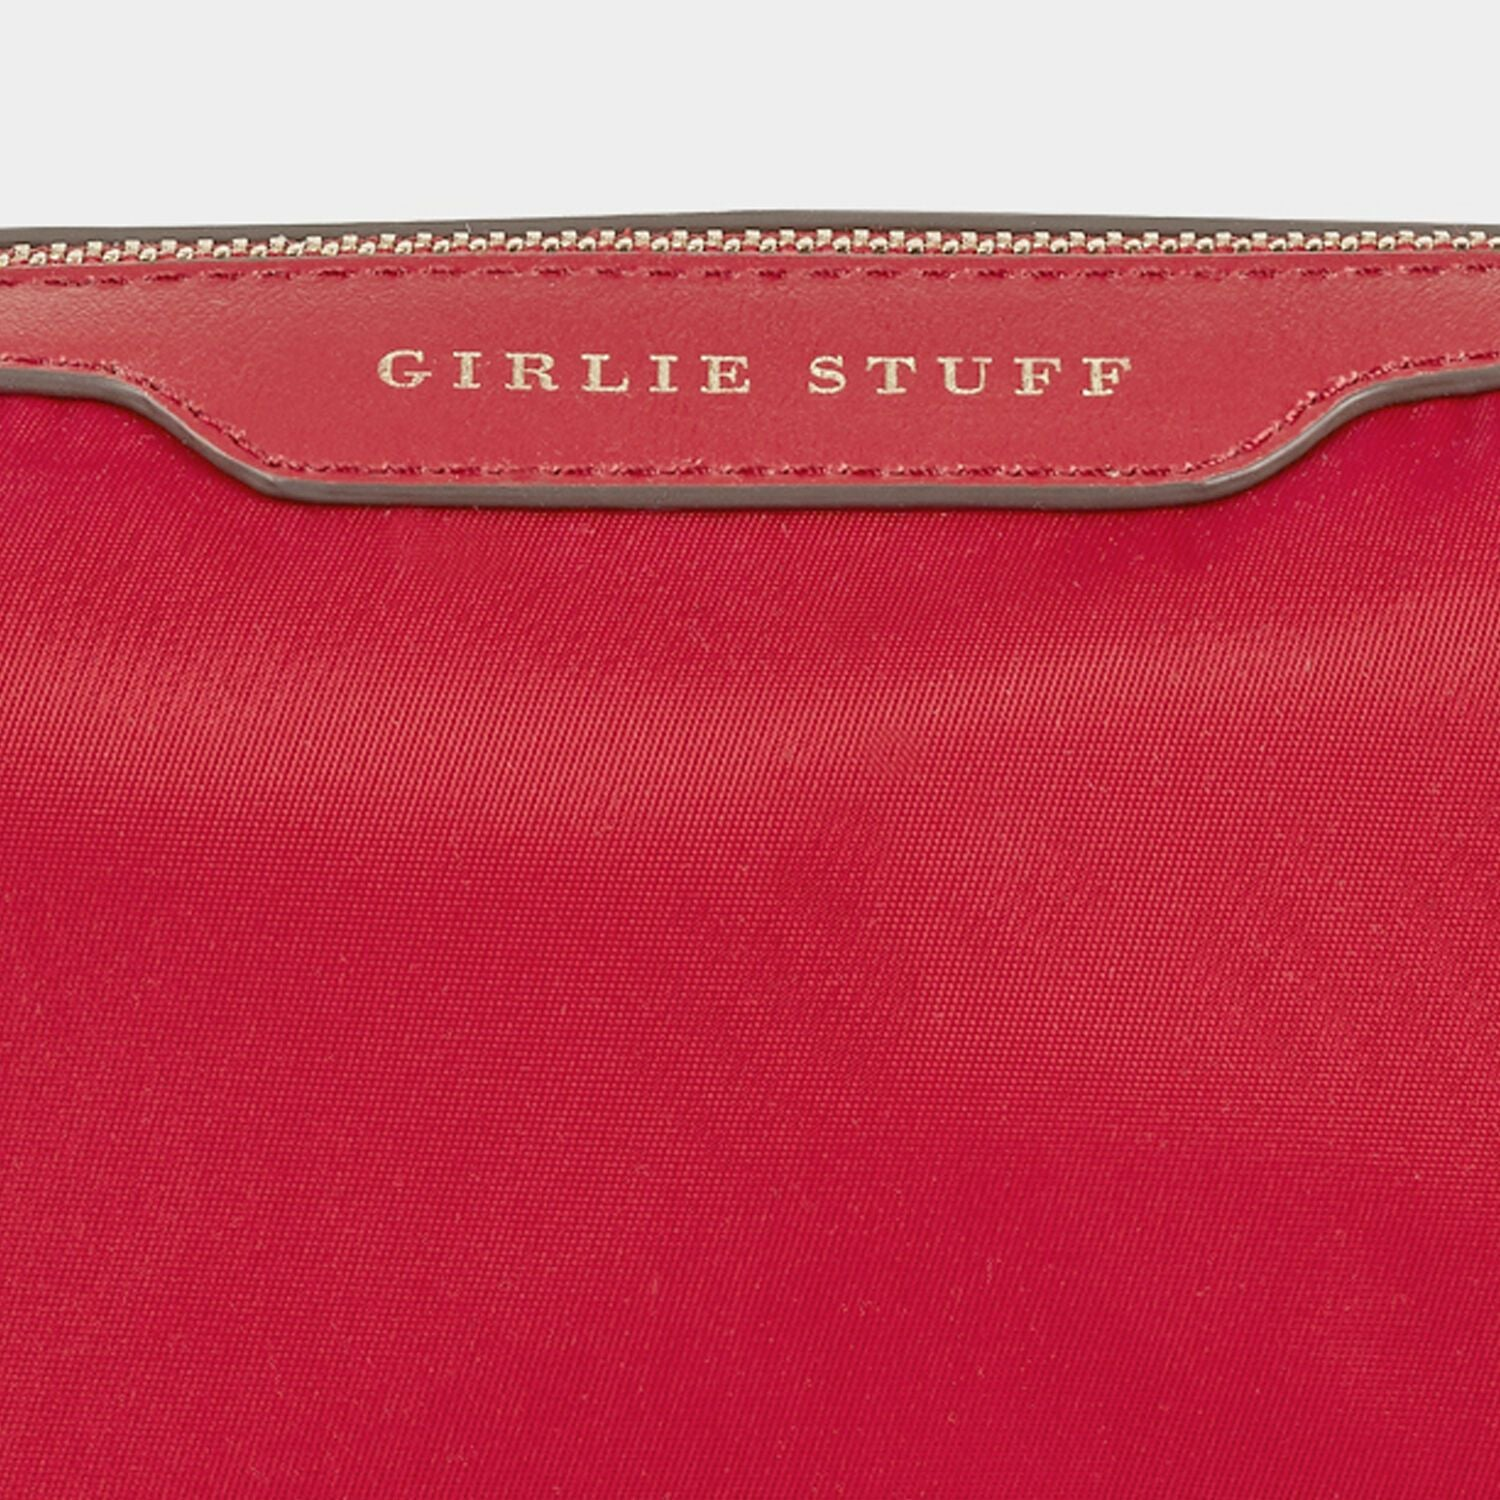 Girlie Stuff Pouch